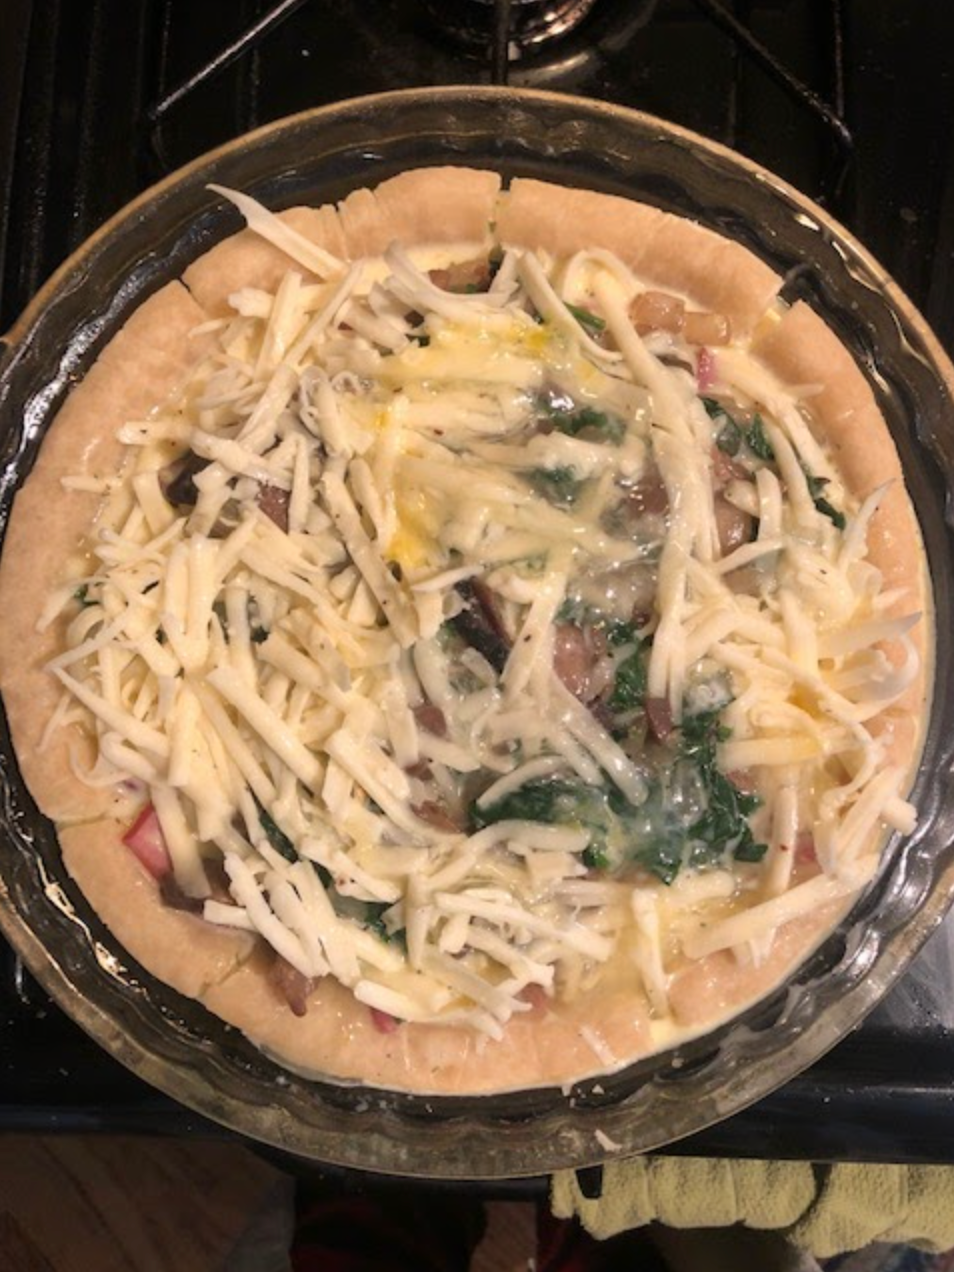 cheese on top of the pie filling